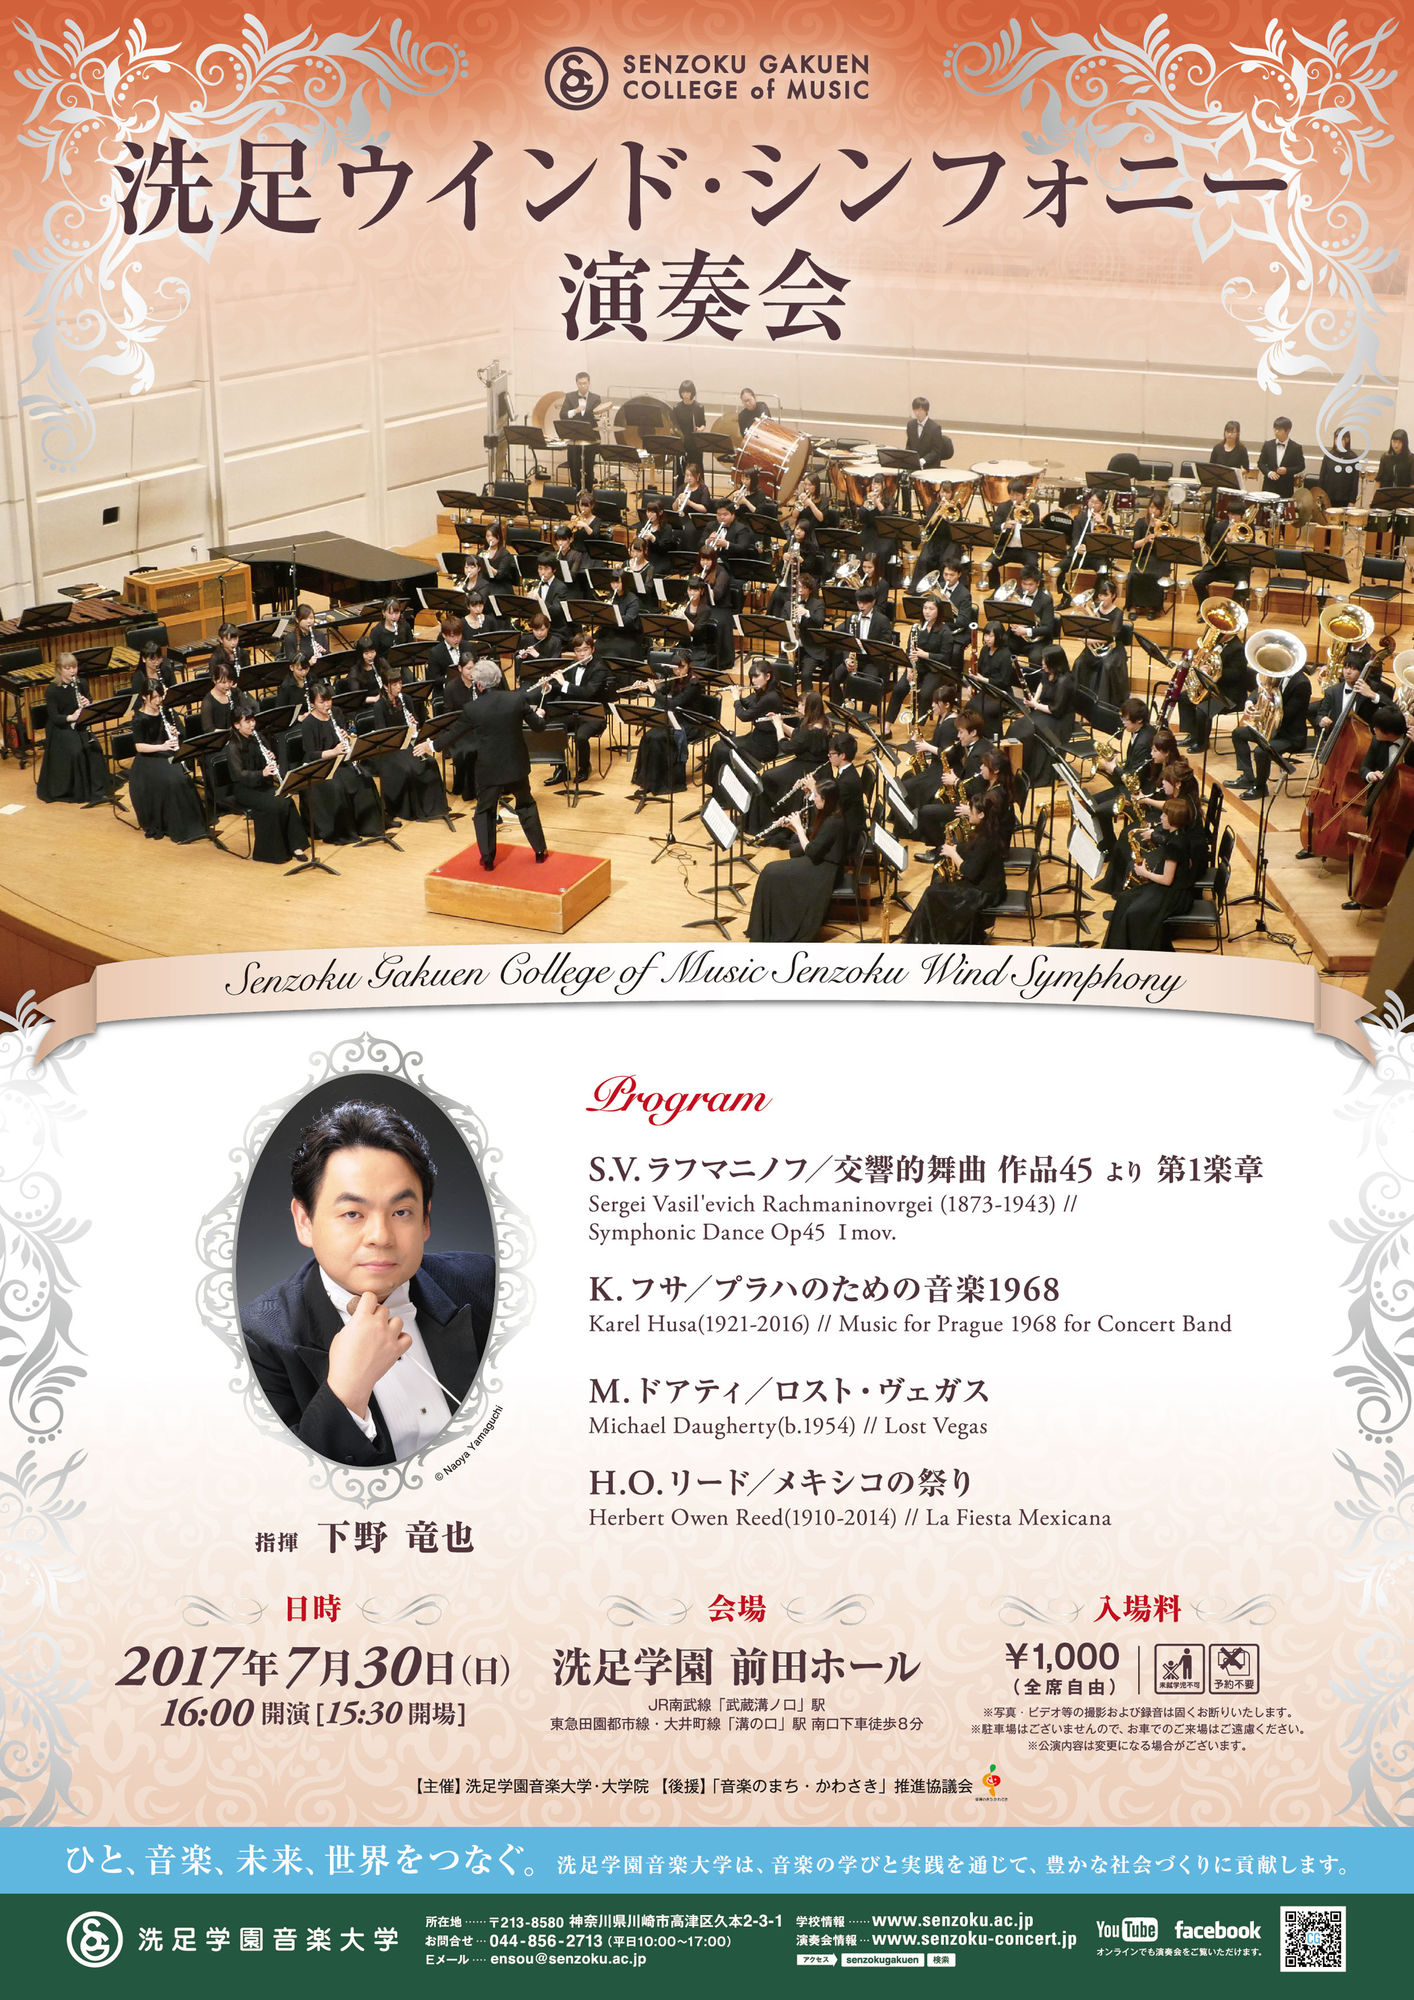 This week's concert (24 July – 30 July, 2017)